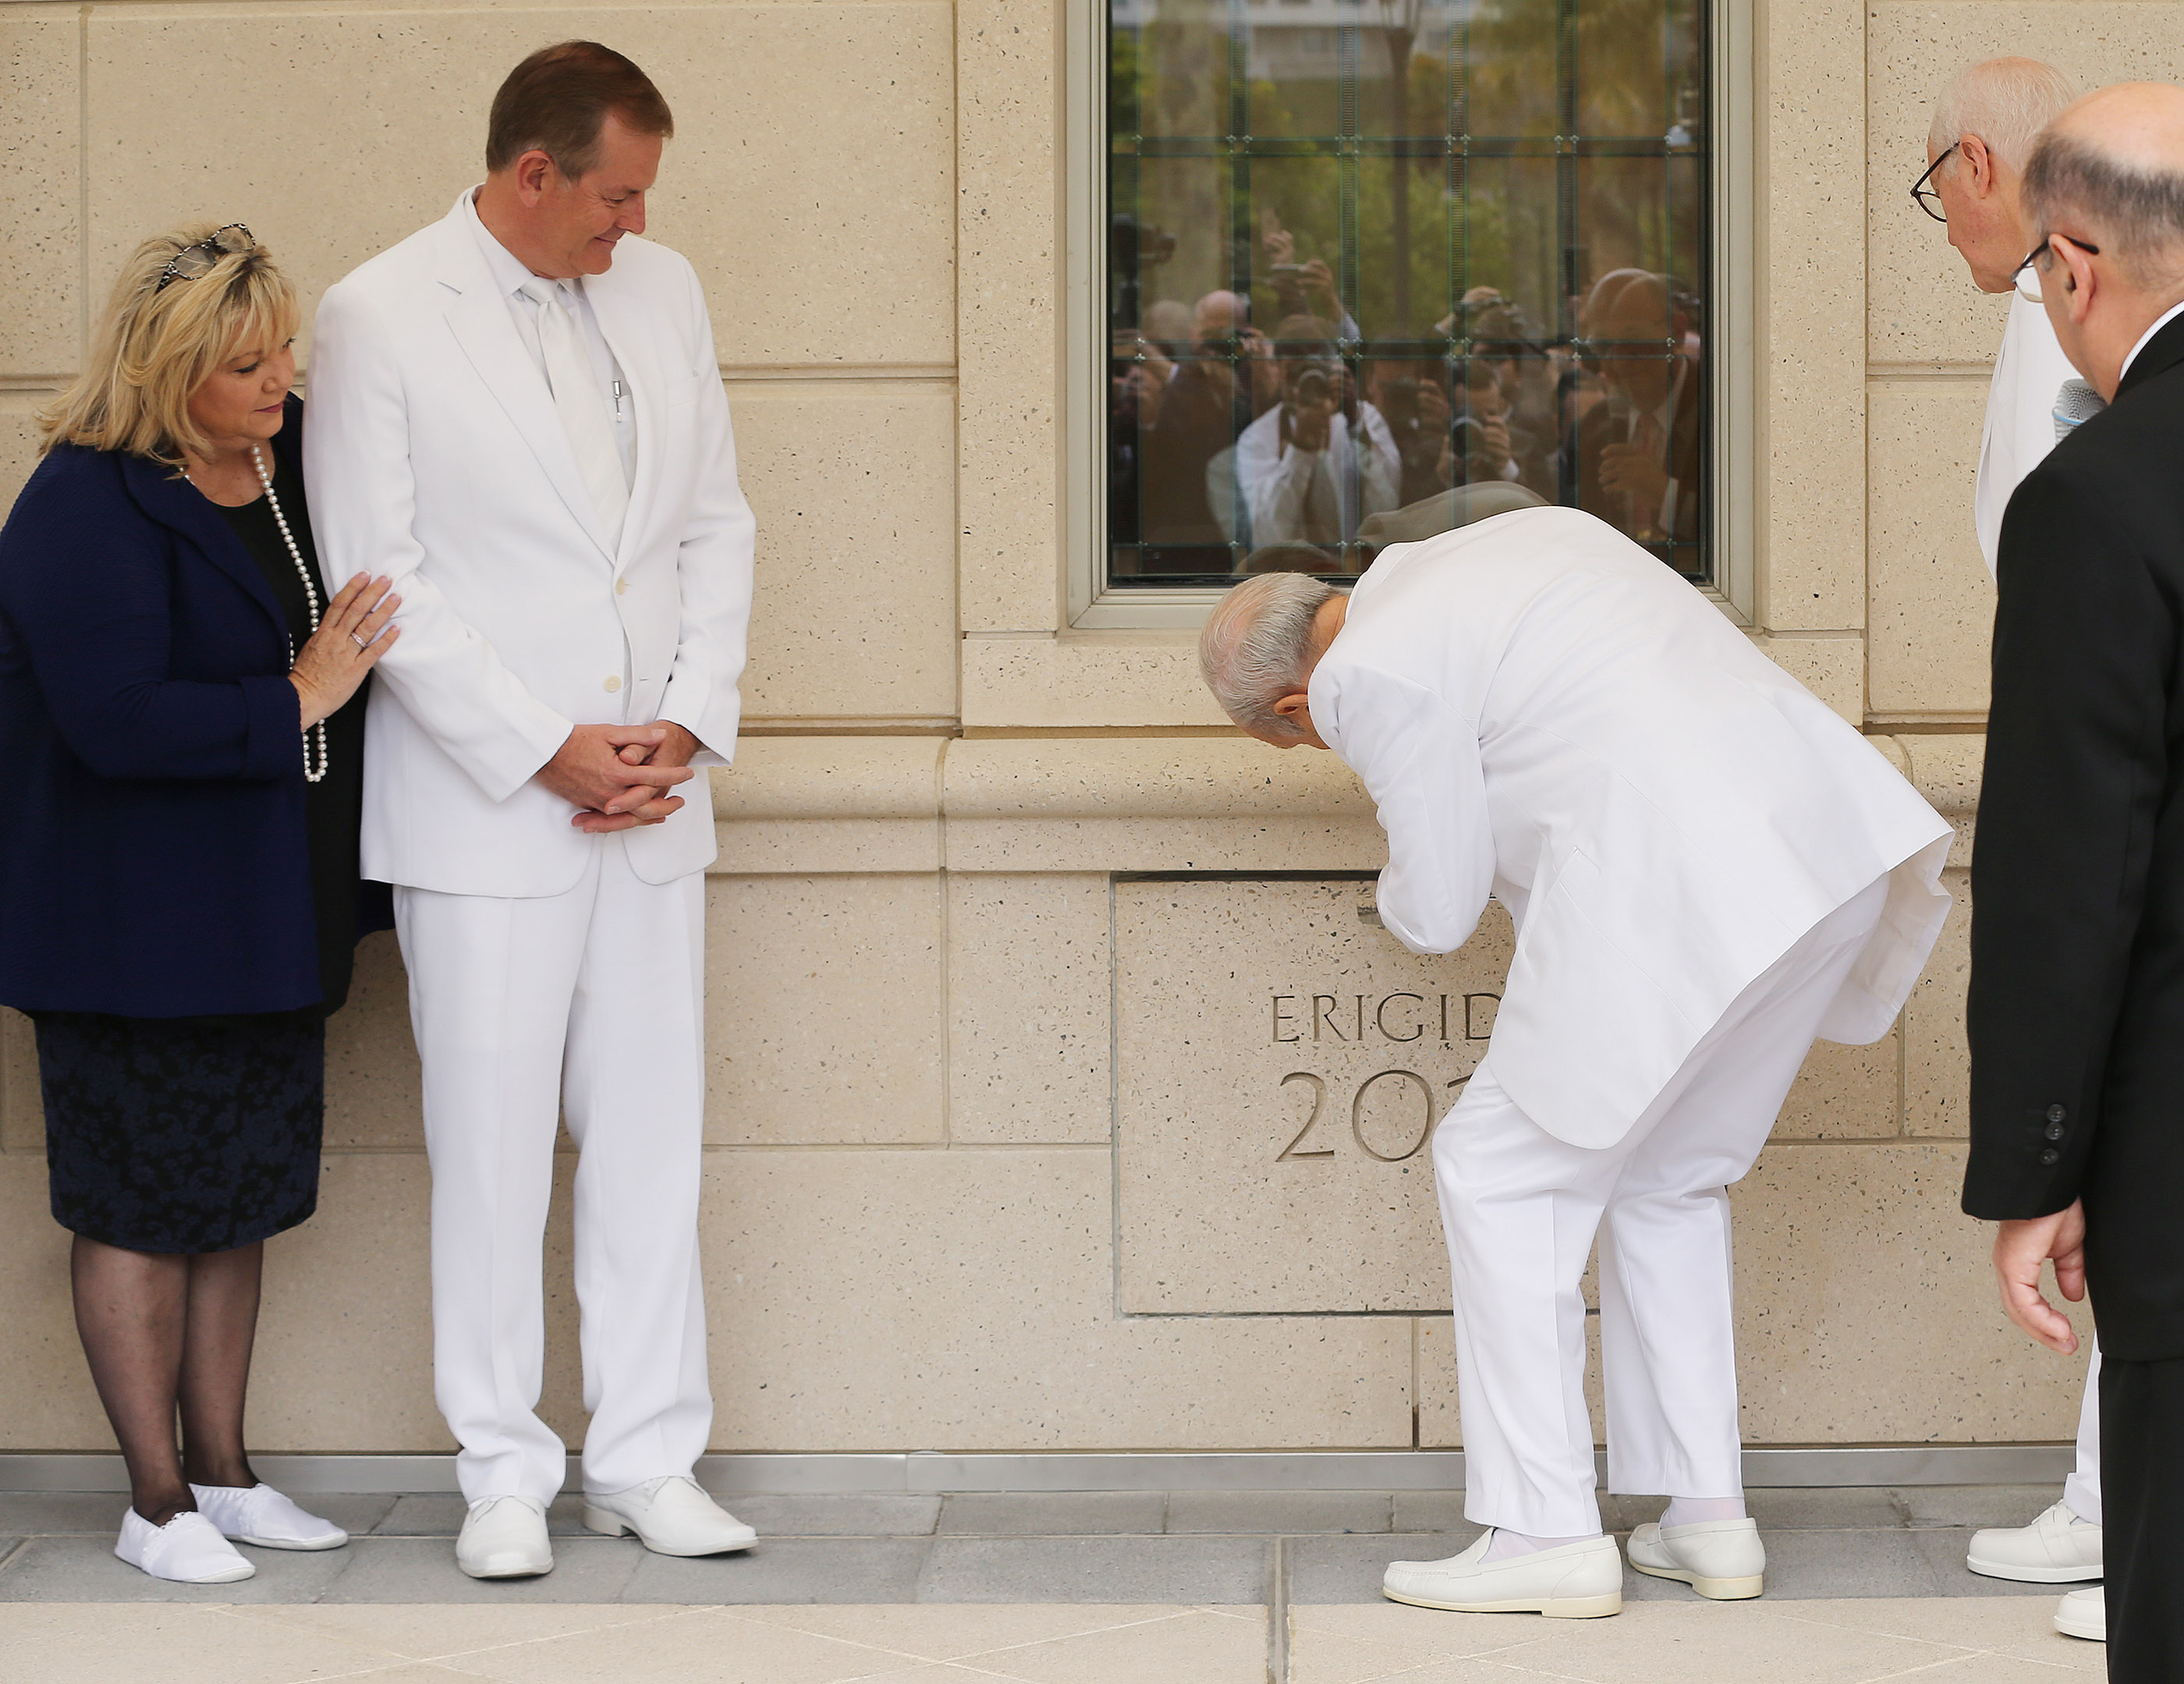 Elder Gary E. Stevenson of the Quorum of the Twelve Apostles and his wife, Sister Lesa Stevenson, watch as President Russell M. Nelson of The Church of Jesus Christ of Latter-day Saints places mortar in the cornerstone during the dedication of the Concepcion Chile Temple on Sunday, Oct. 28, 2018, in Concepcion, Chile.